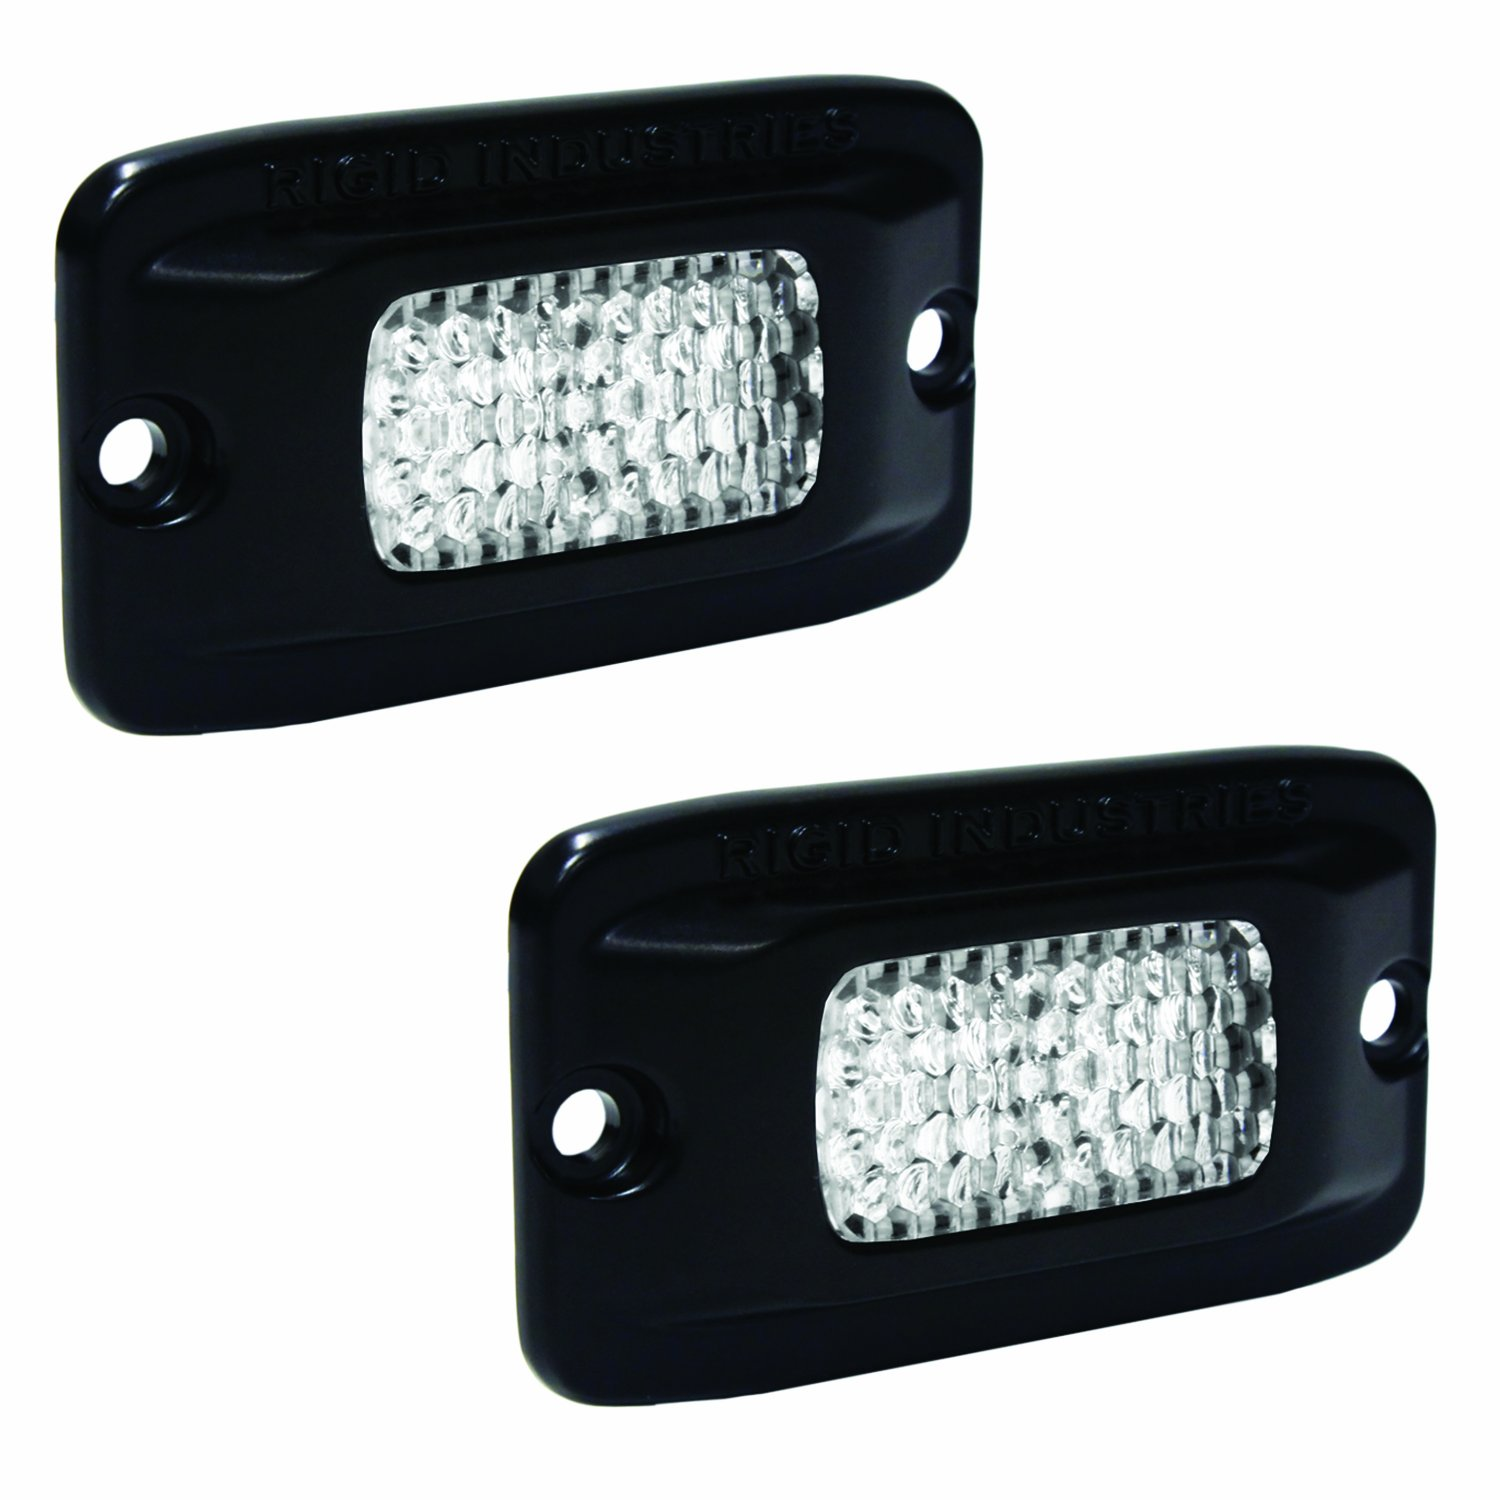 power usa xenon led backup white import reverse lighting products lights high parking